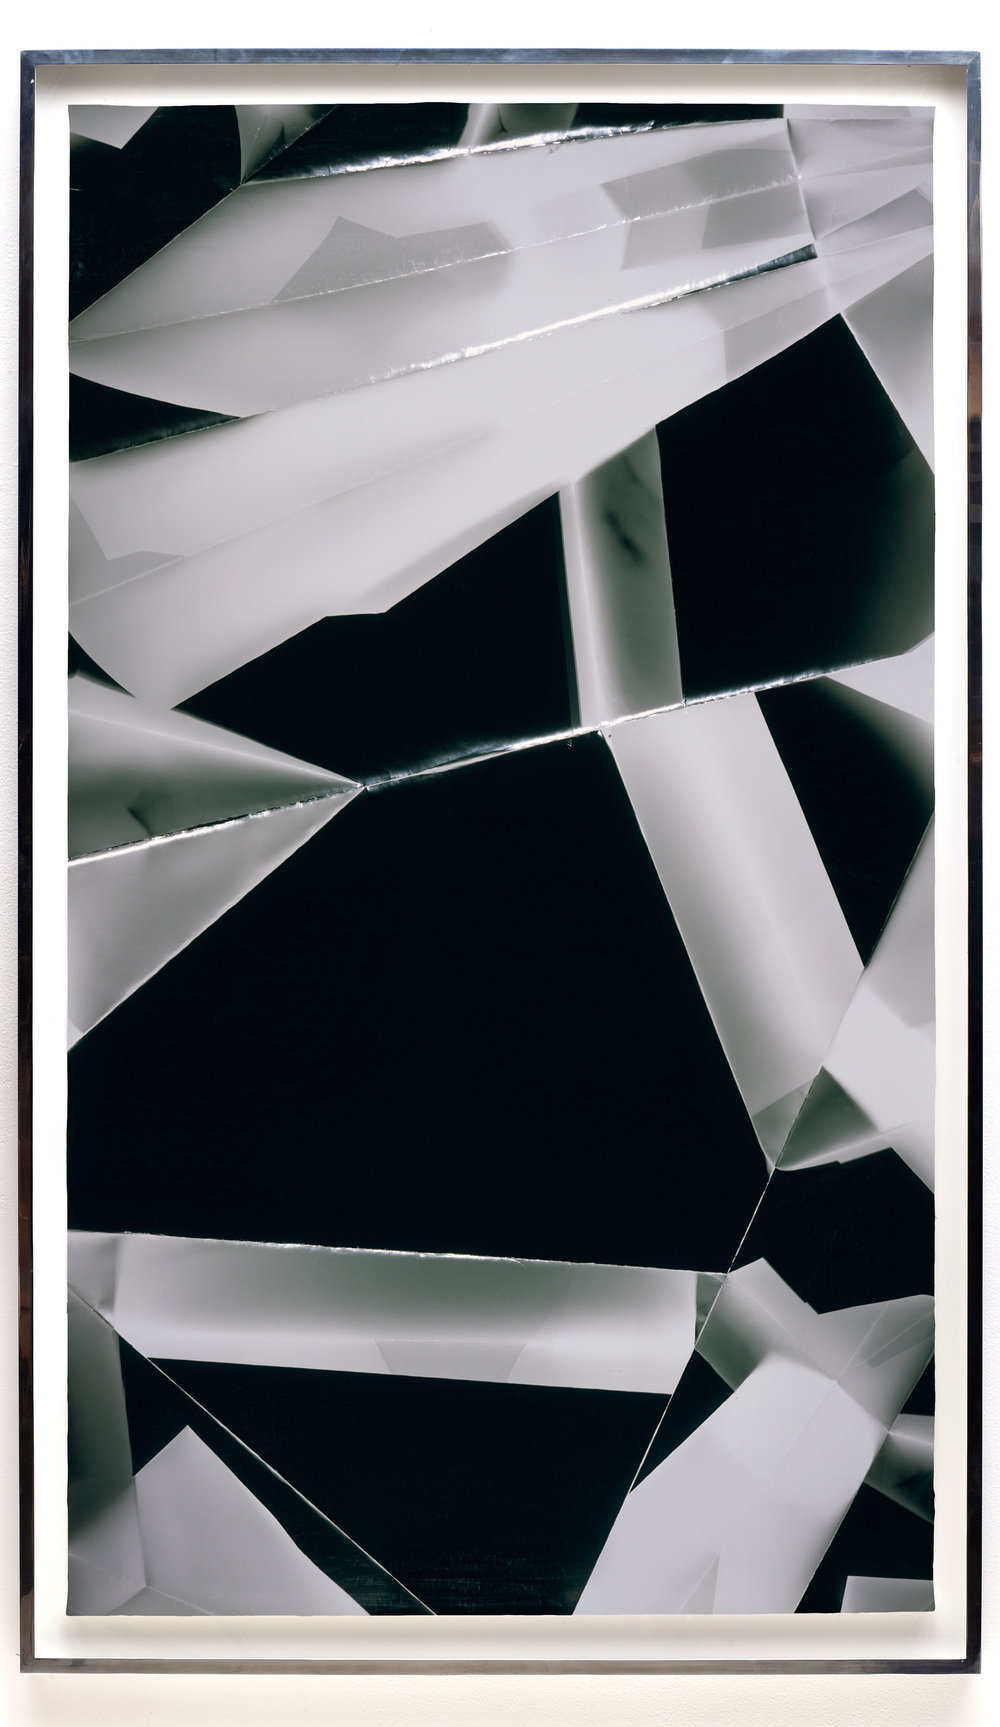 Fold (60º/120º/180º/240º/300º/360º directional light sources), June 30, 2008, Annandale-On-Hudson, New York, Foma Multigrade Fiber   2009  Black and white fiber based photographic paper  80 3/4 x 46 3/4 inches   Black and White Directional Folds, 2006–2014    Legibility on Color Backgrounds, 2009